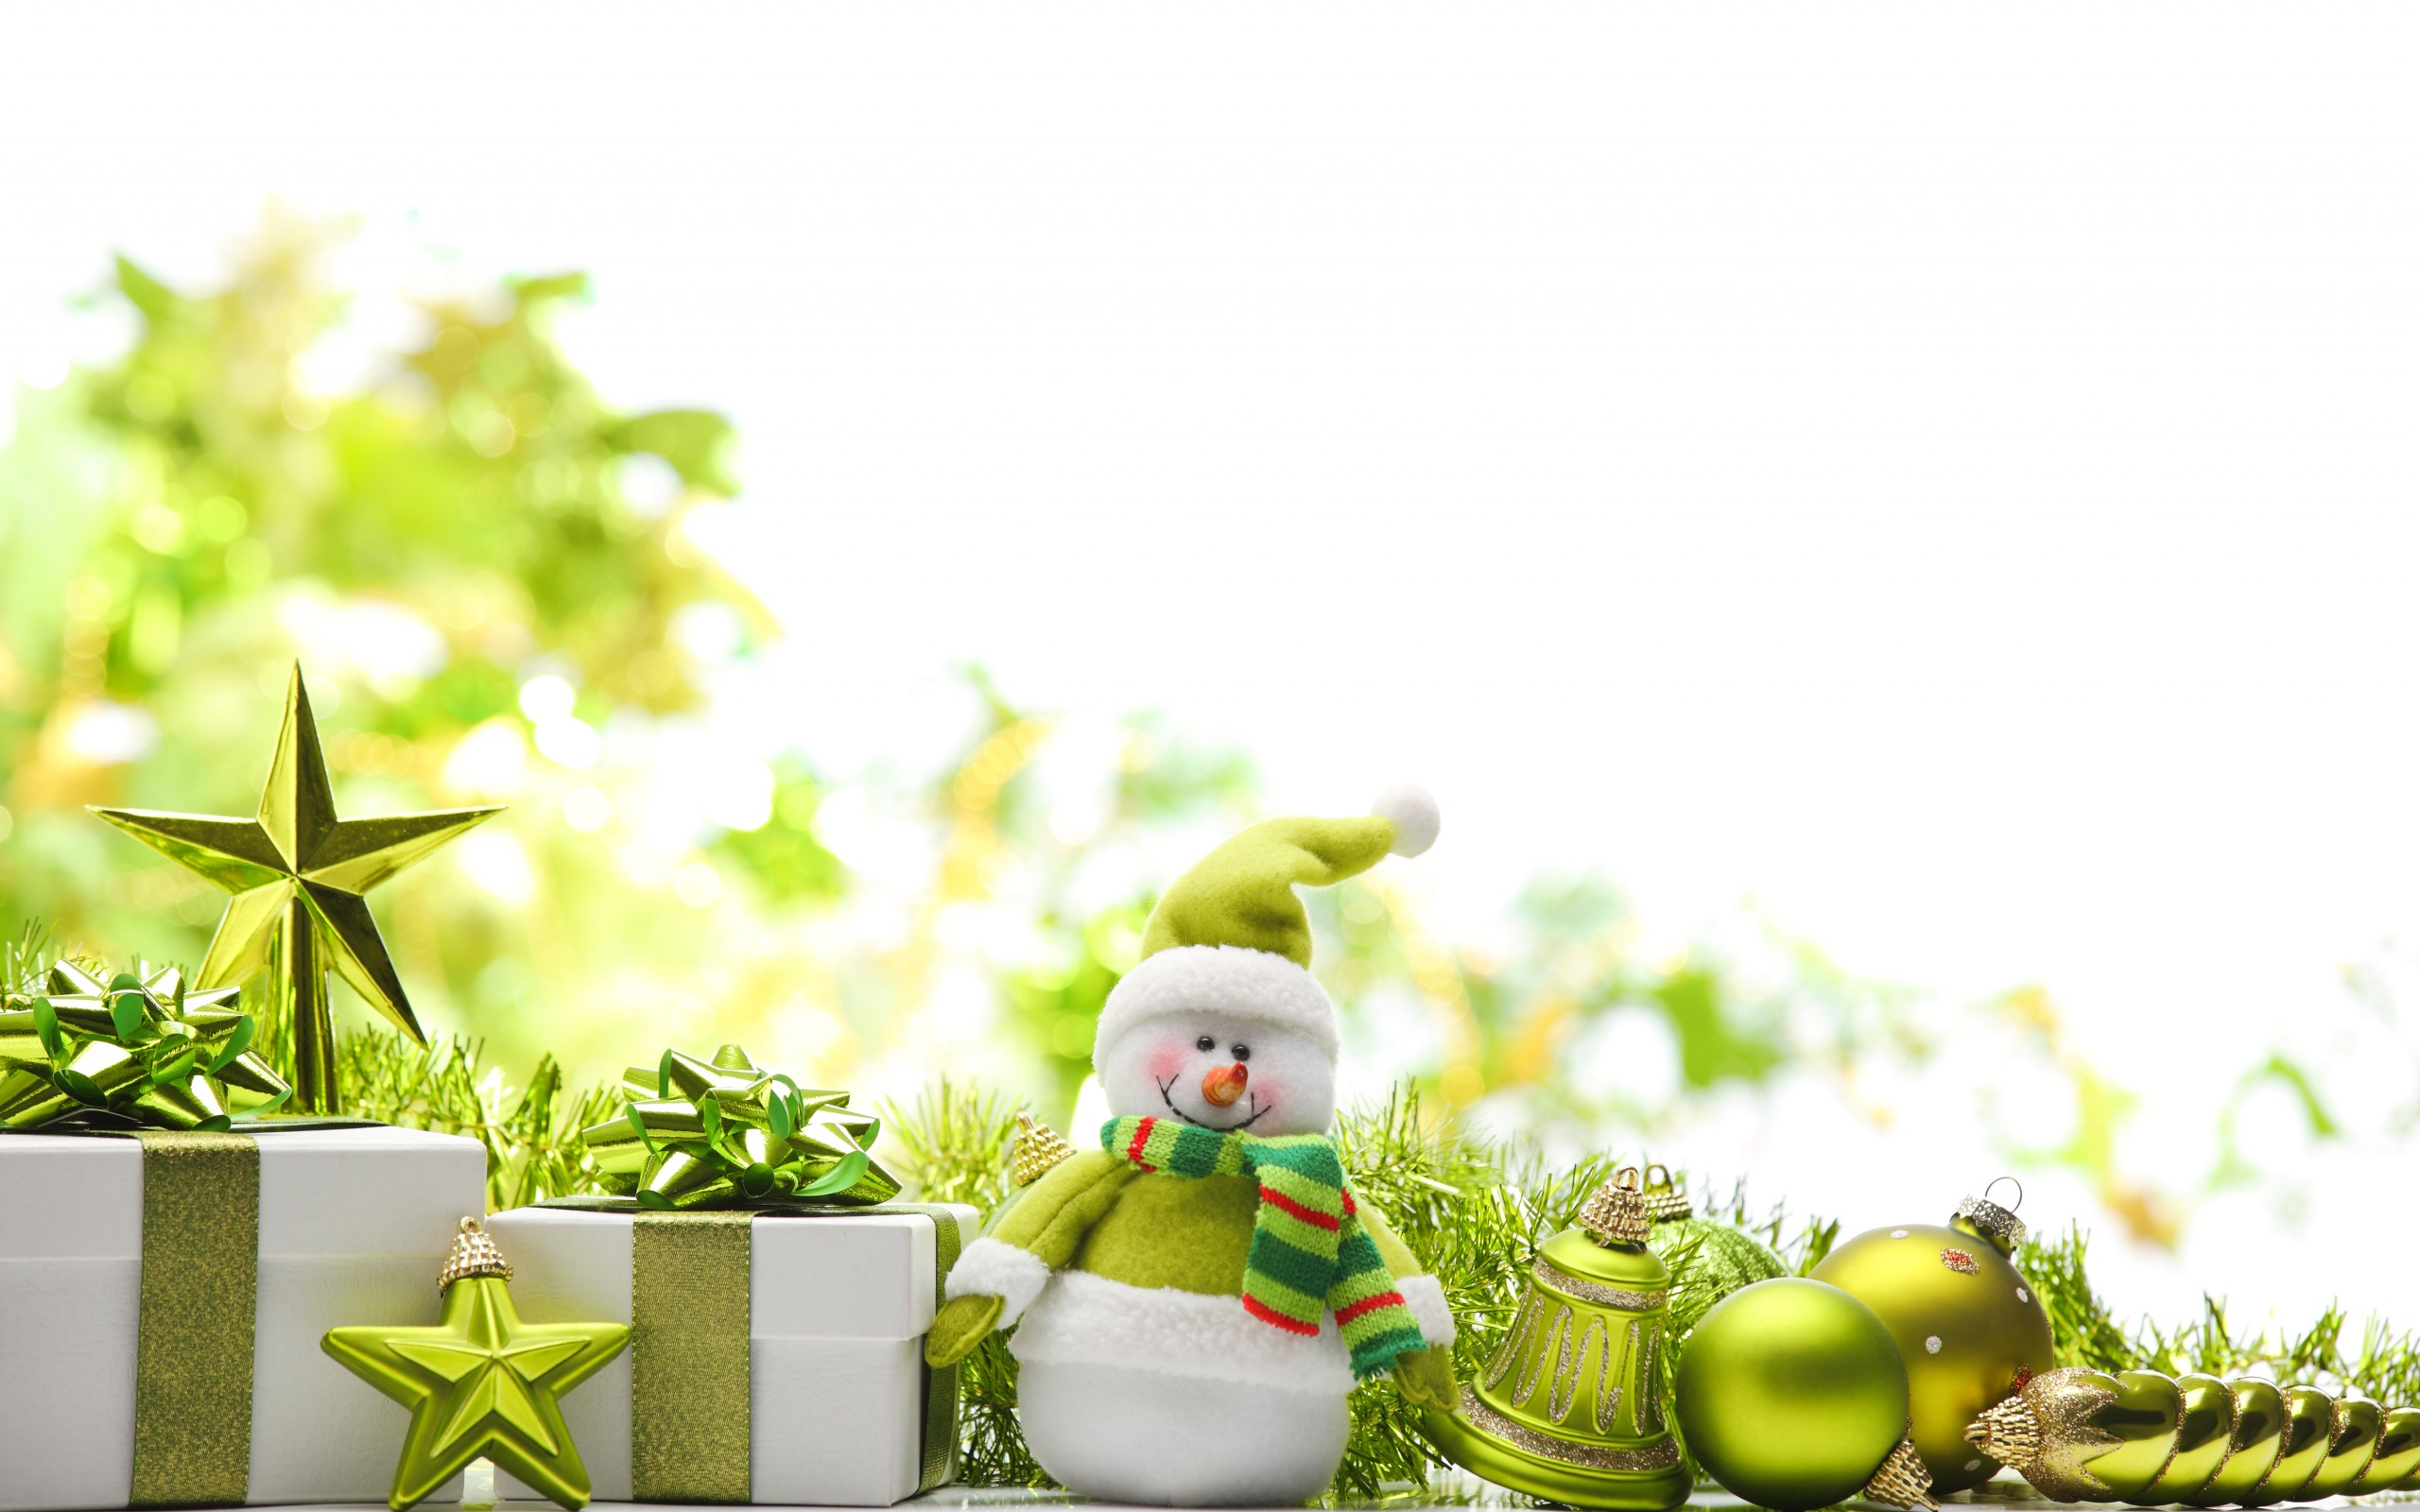 550613_happy_holidays_merry_christmas_new_year_2560x1600_